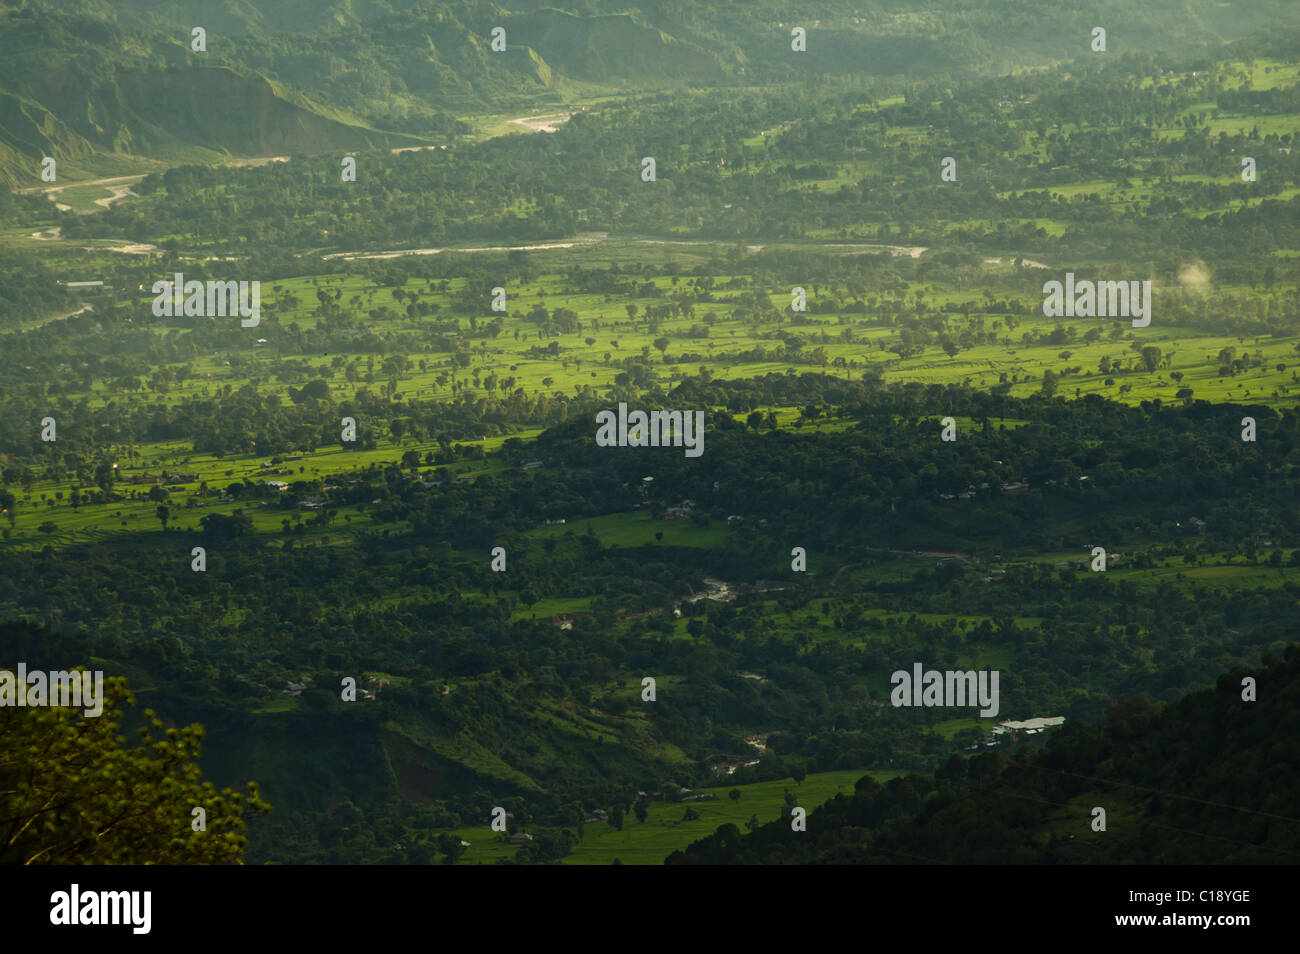 The landscape of Himachal Pradesh at the Himalayan foothils - Stock Image